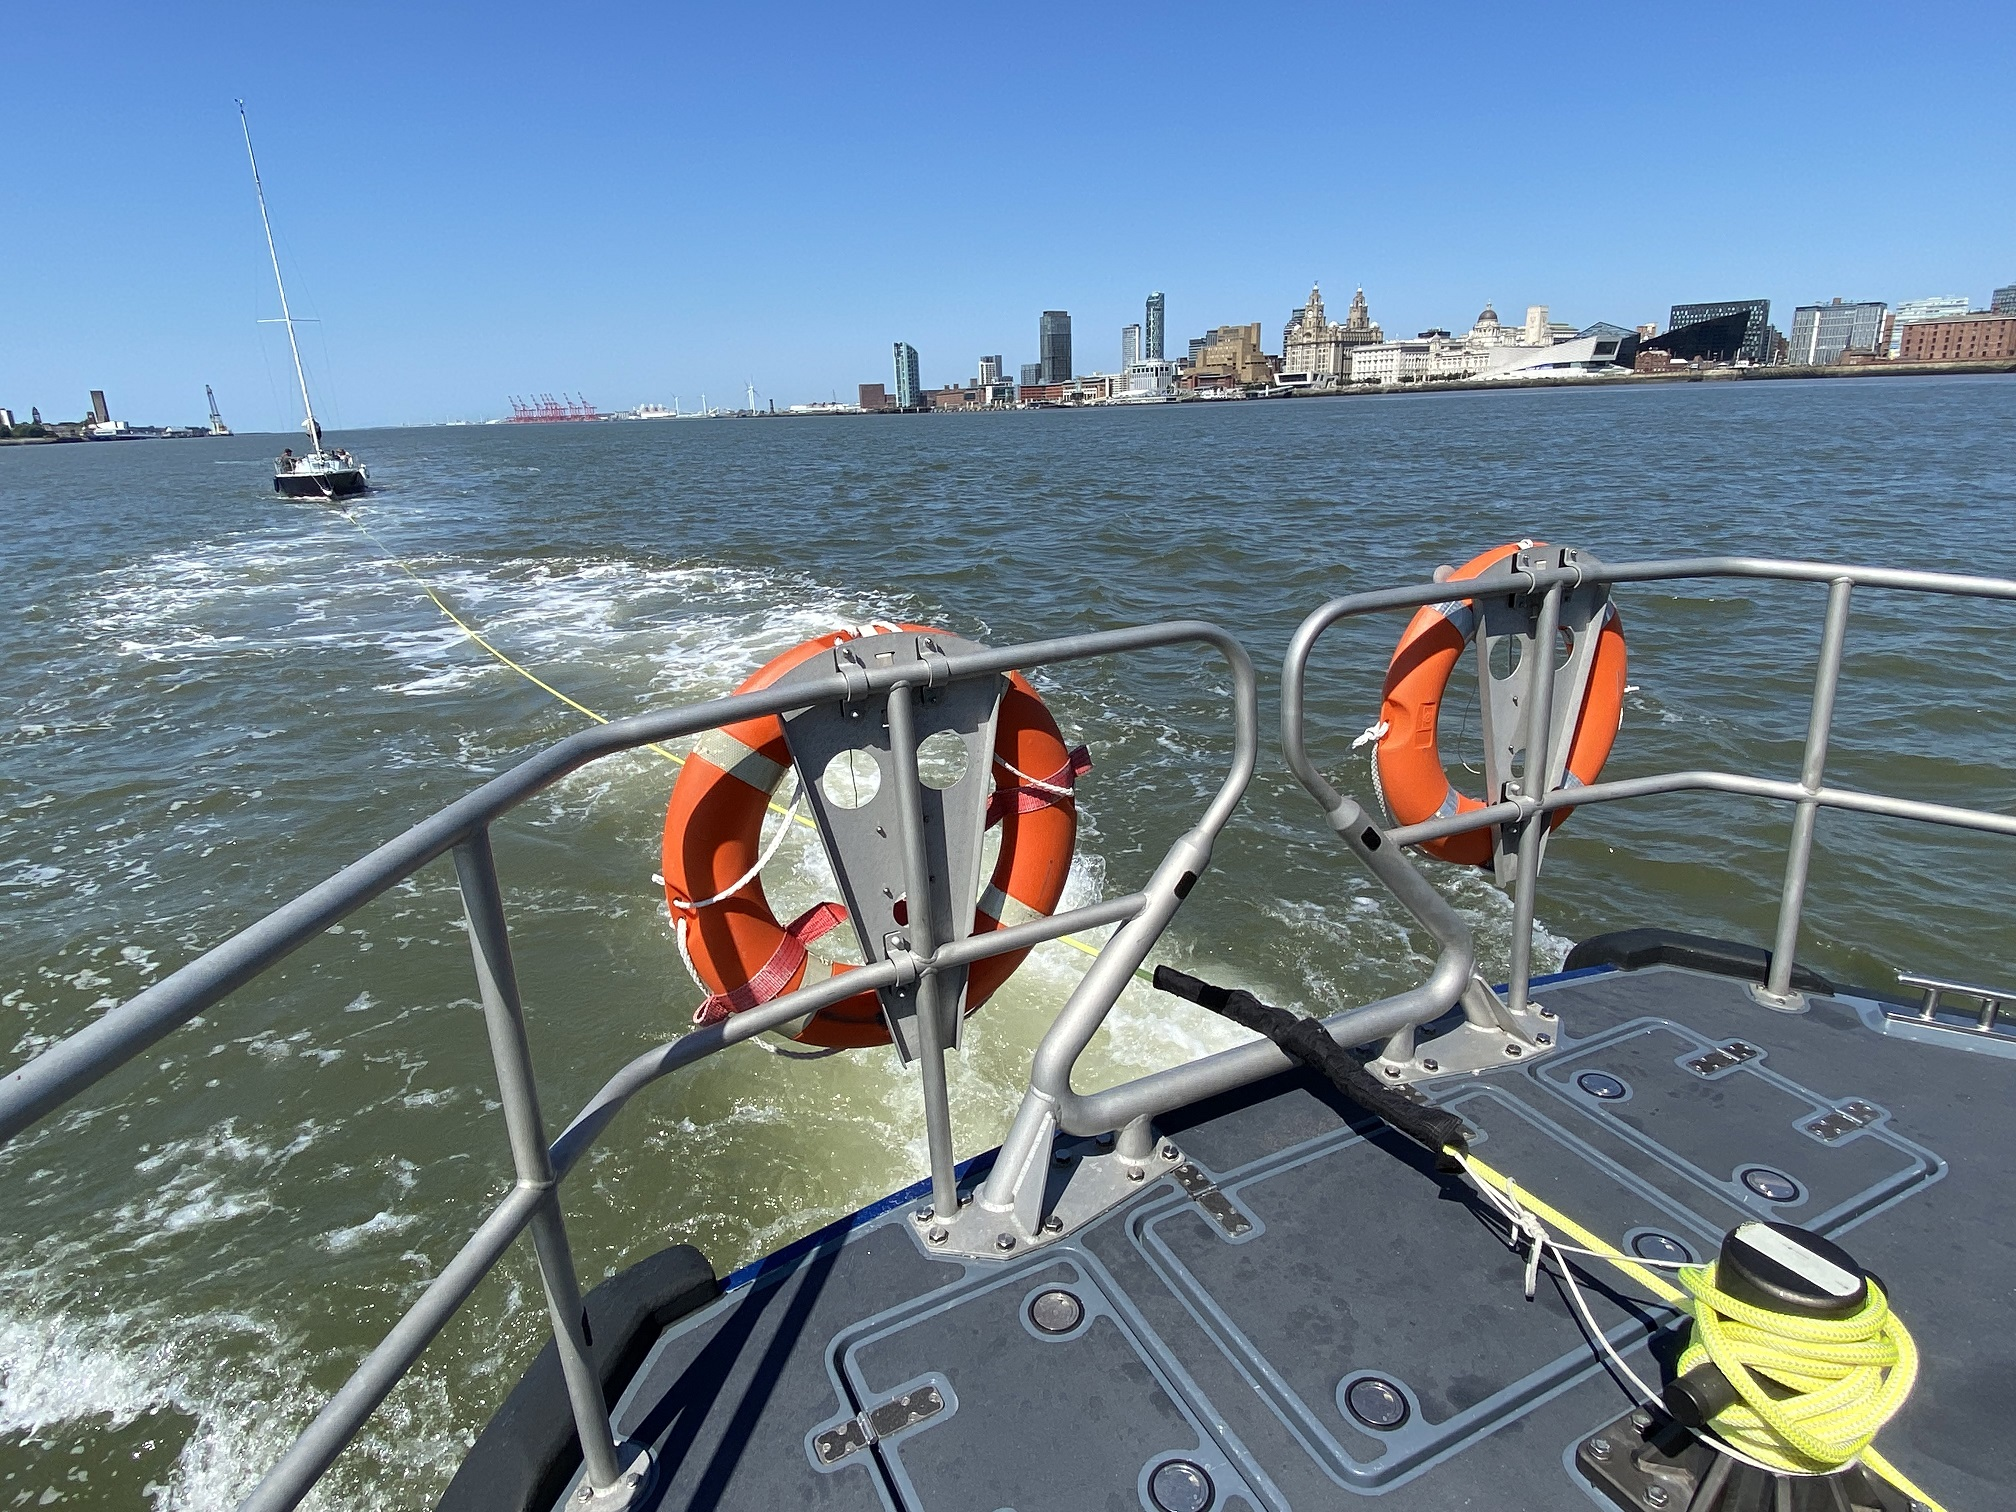 hoylake_rnli_lifeboat_tows_yacht_to_safety_after_mechanical_failure3